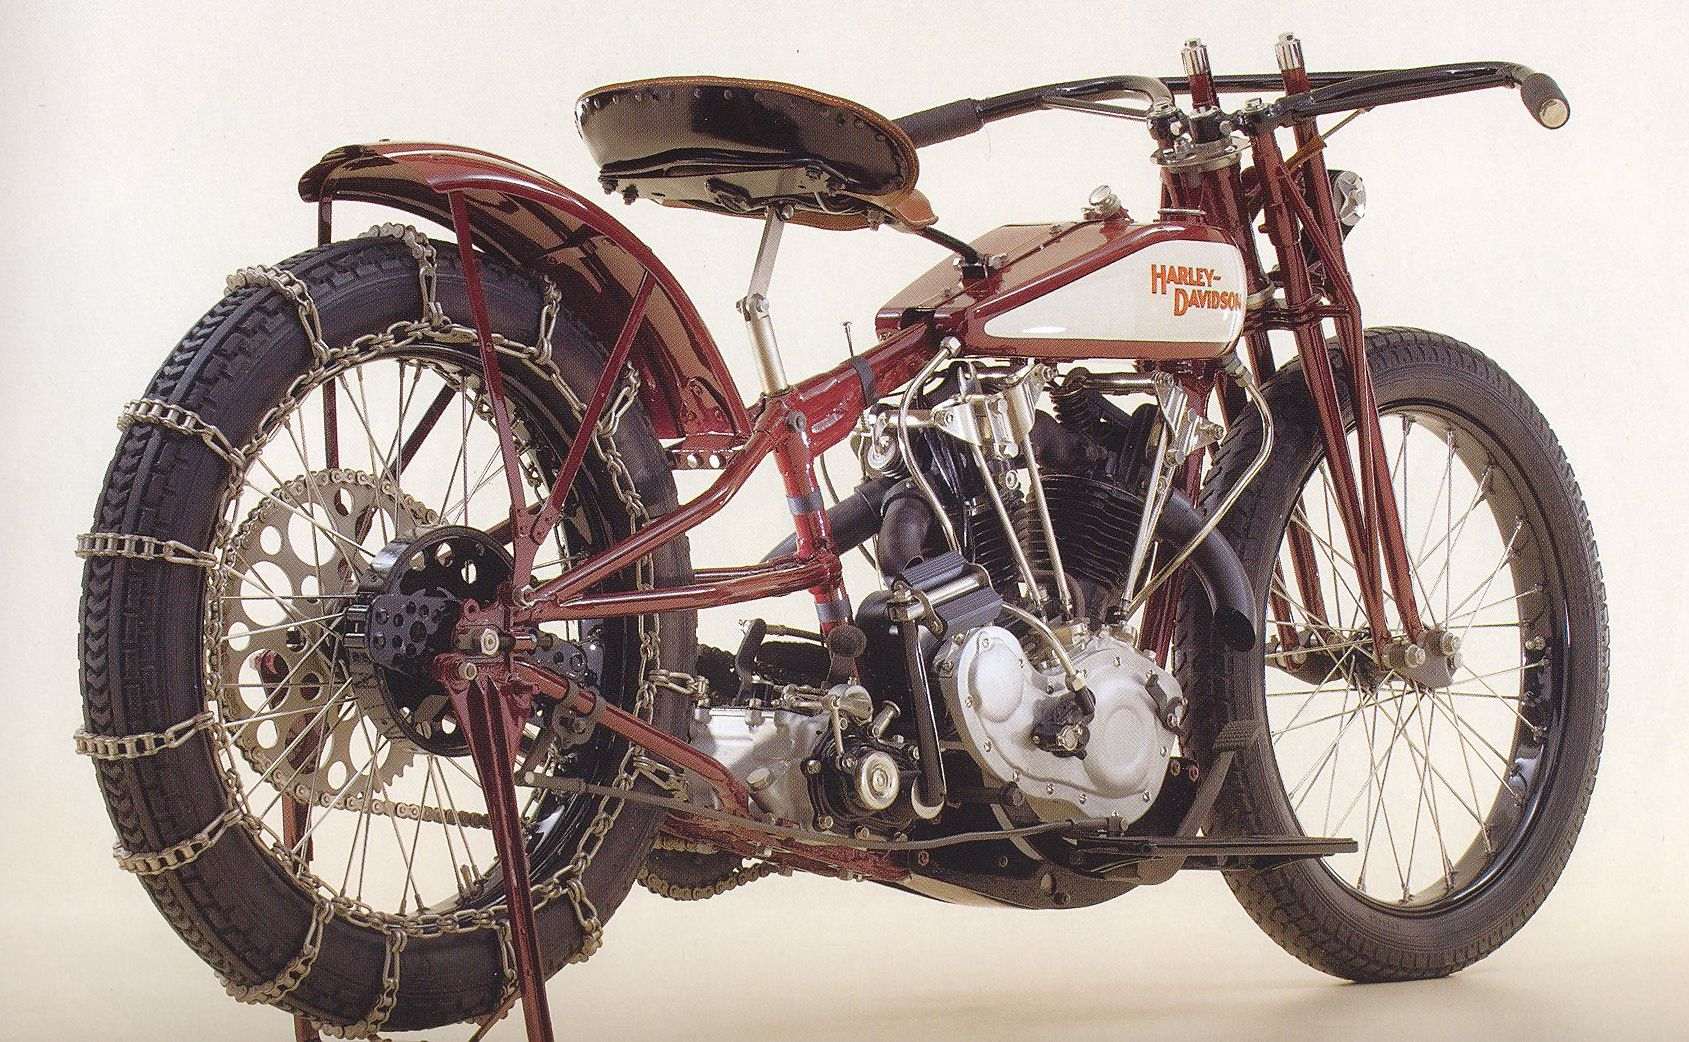 1928 Model FHAD Experimental Factory Hillclimber